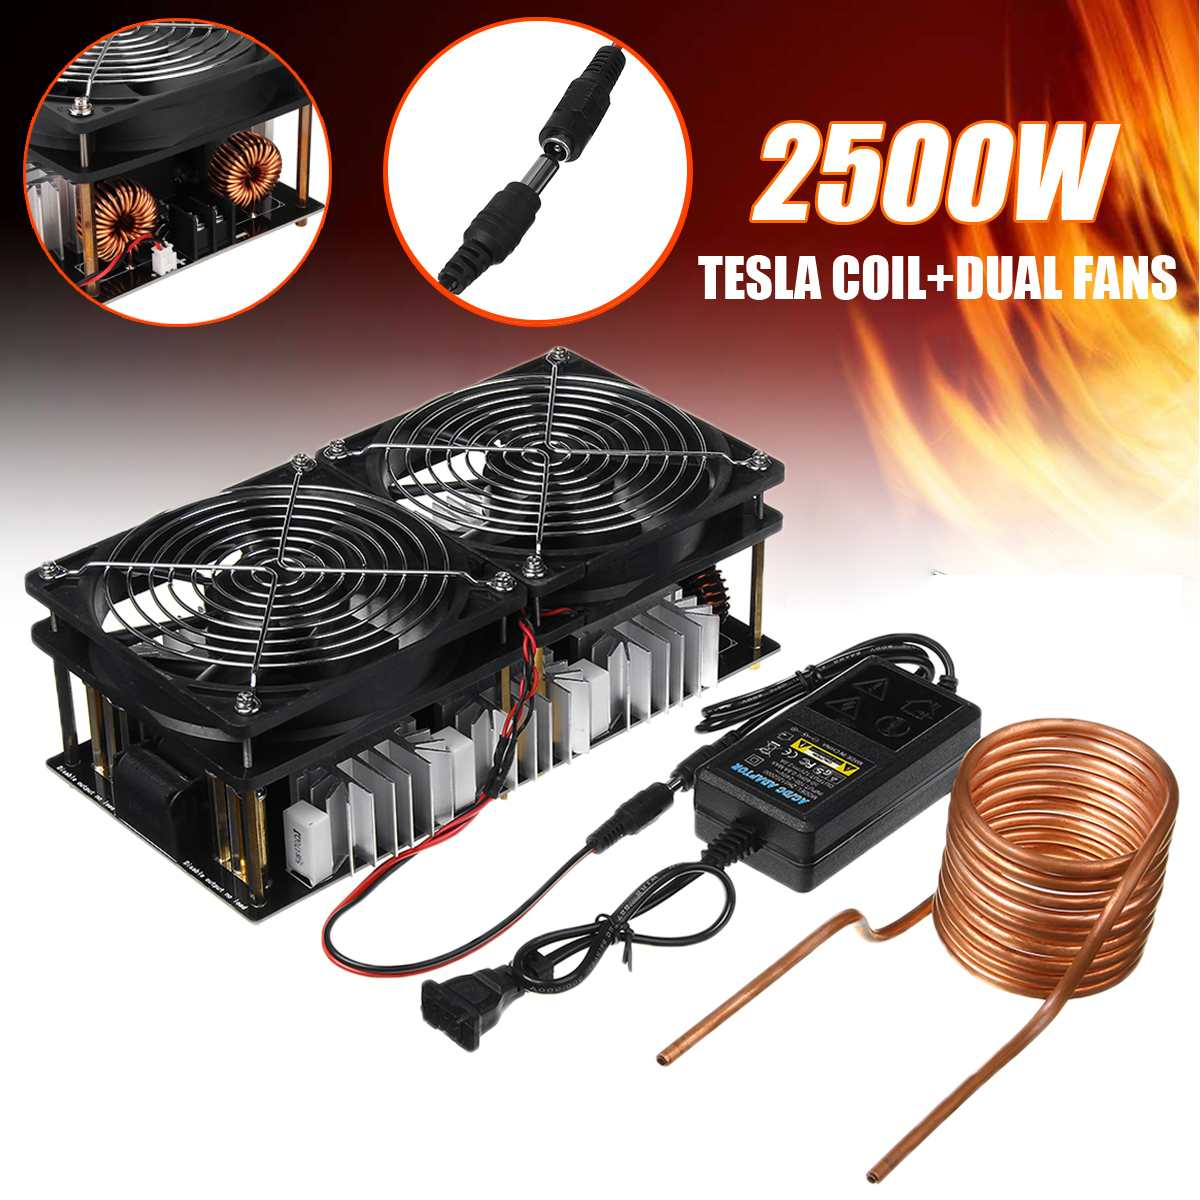 2500W 12V-48V ZVS Induction Heater Heating PCB Board Module Flyback Driver with Coil Dual Fan Power Supply kit